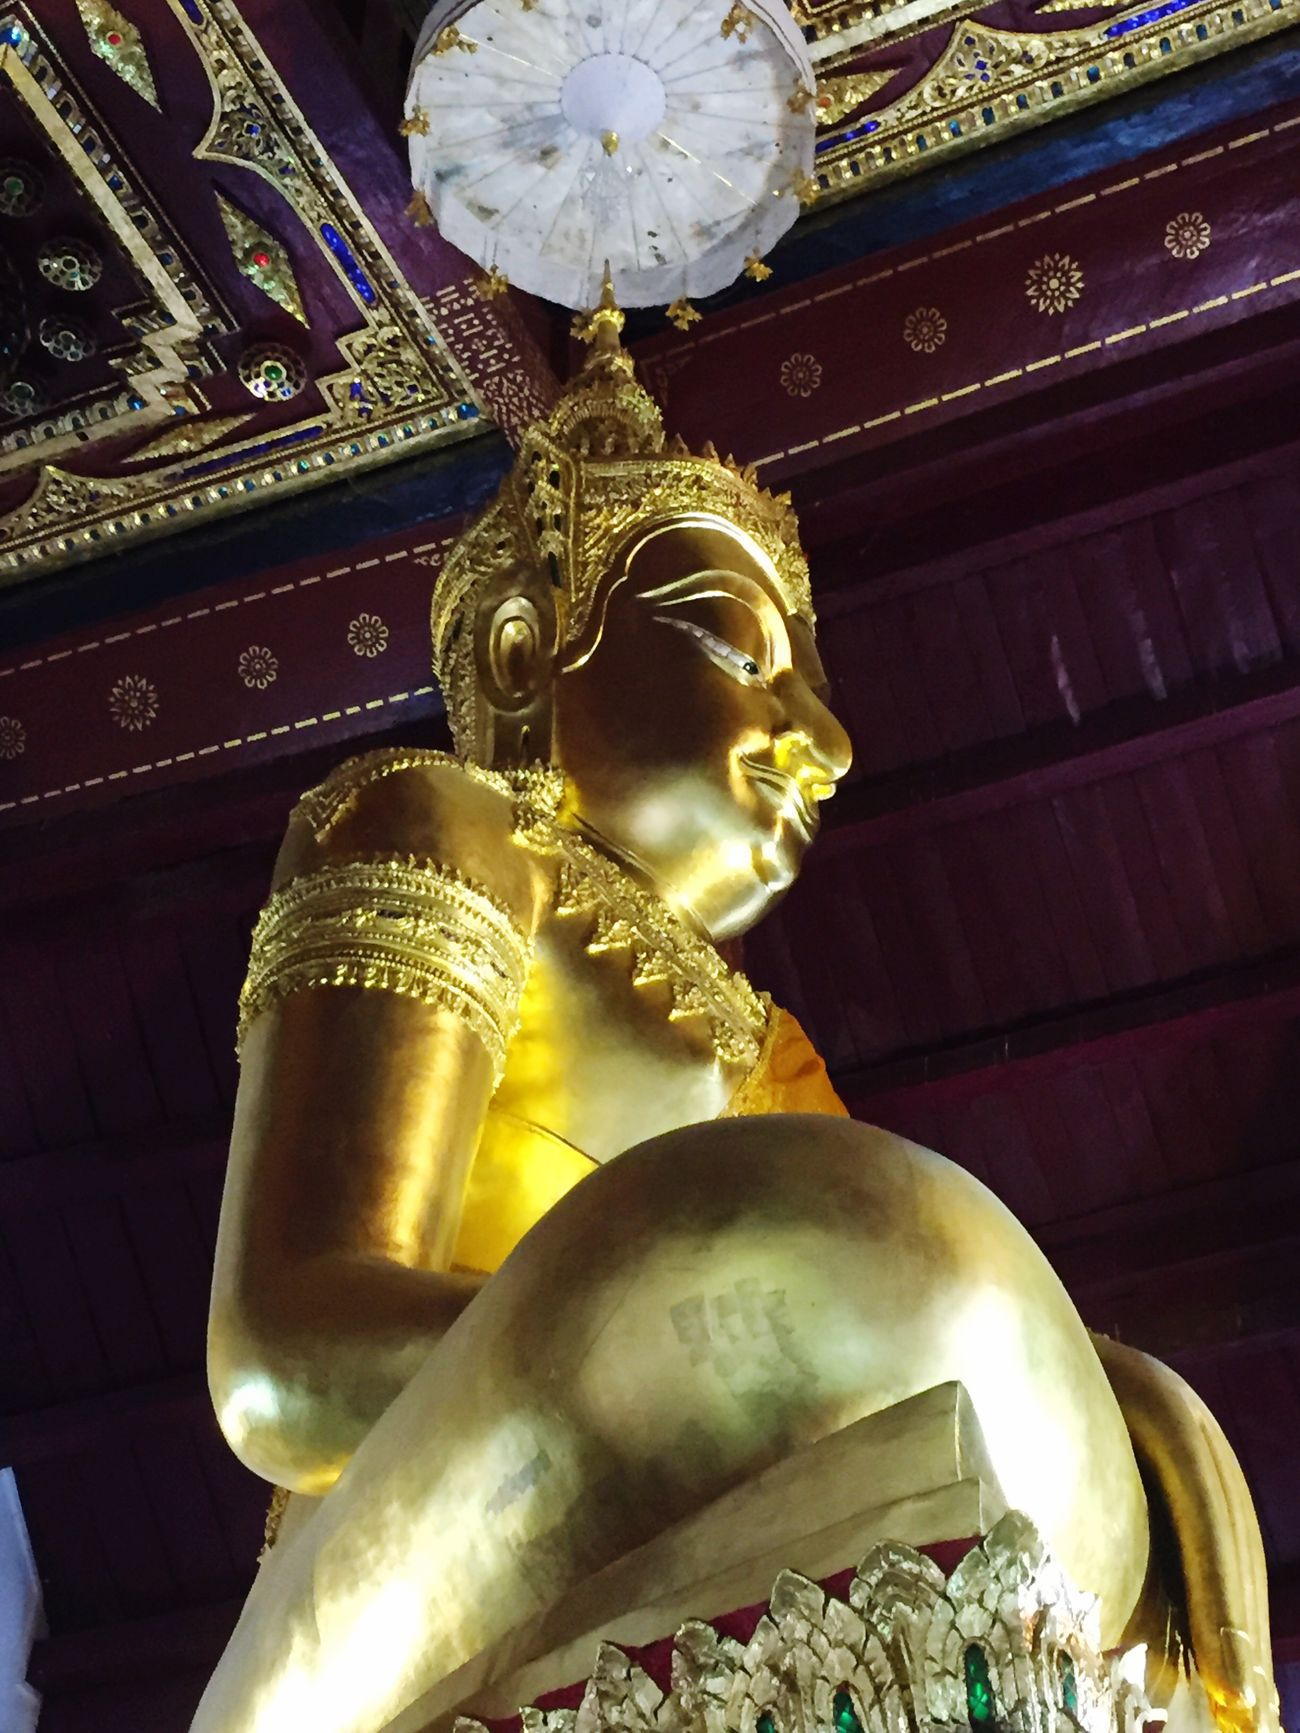 Listening to Buddha Religion Gold Colored Place Of Worship Human Representation Statue Spirituality Sculpture Travel Destinations Indoors  No People Shield Day